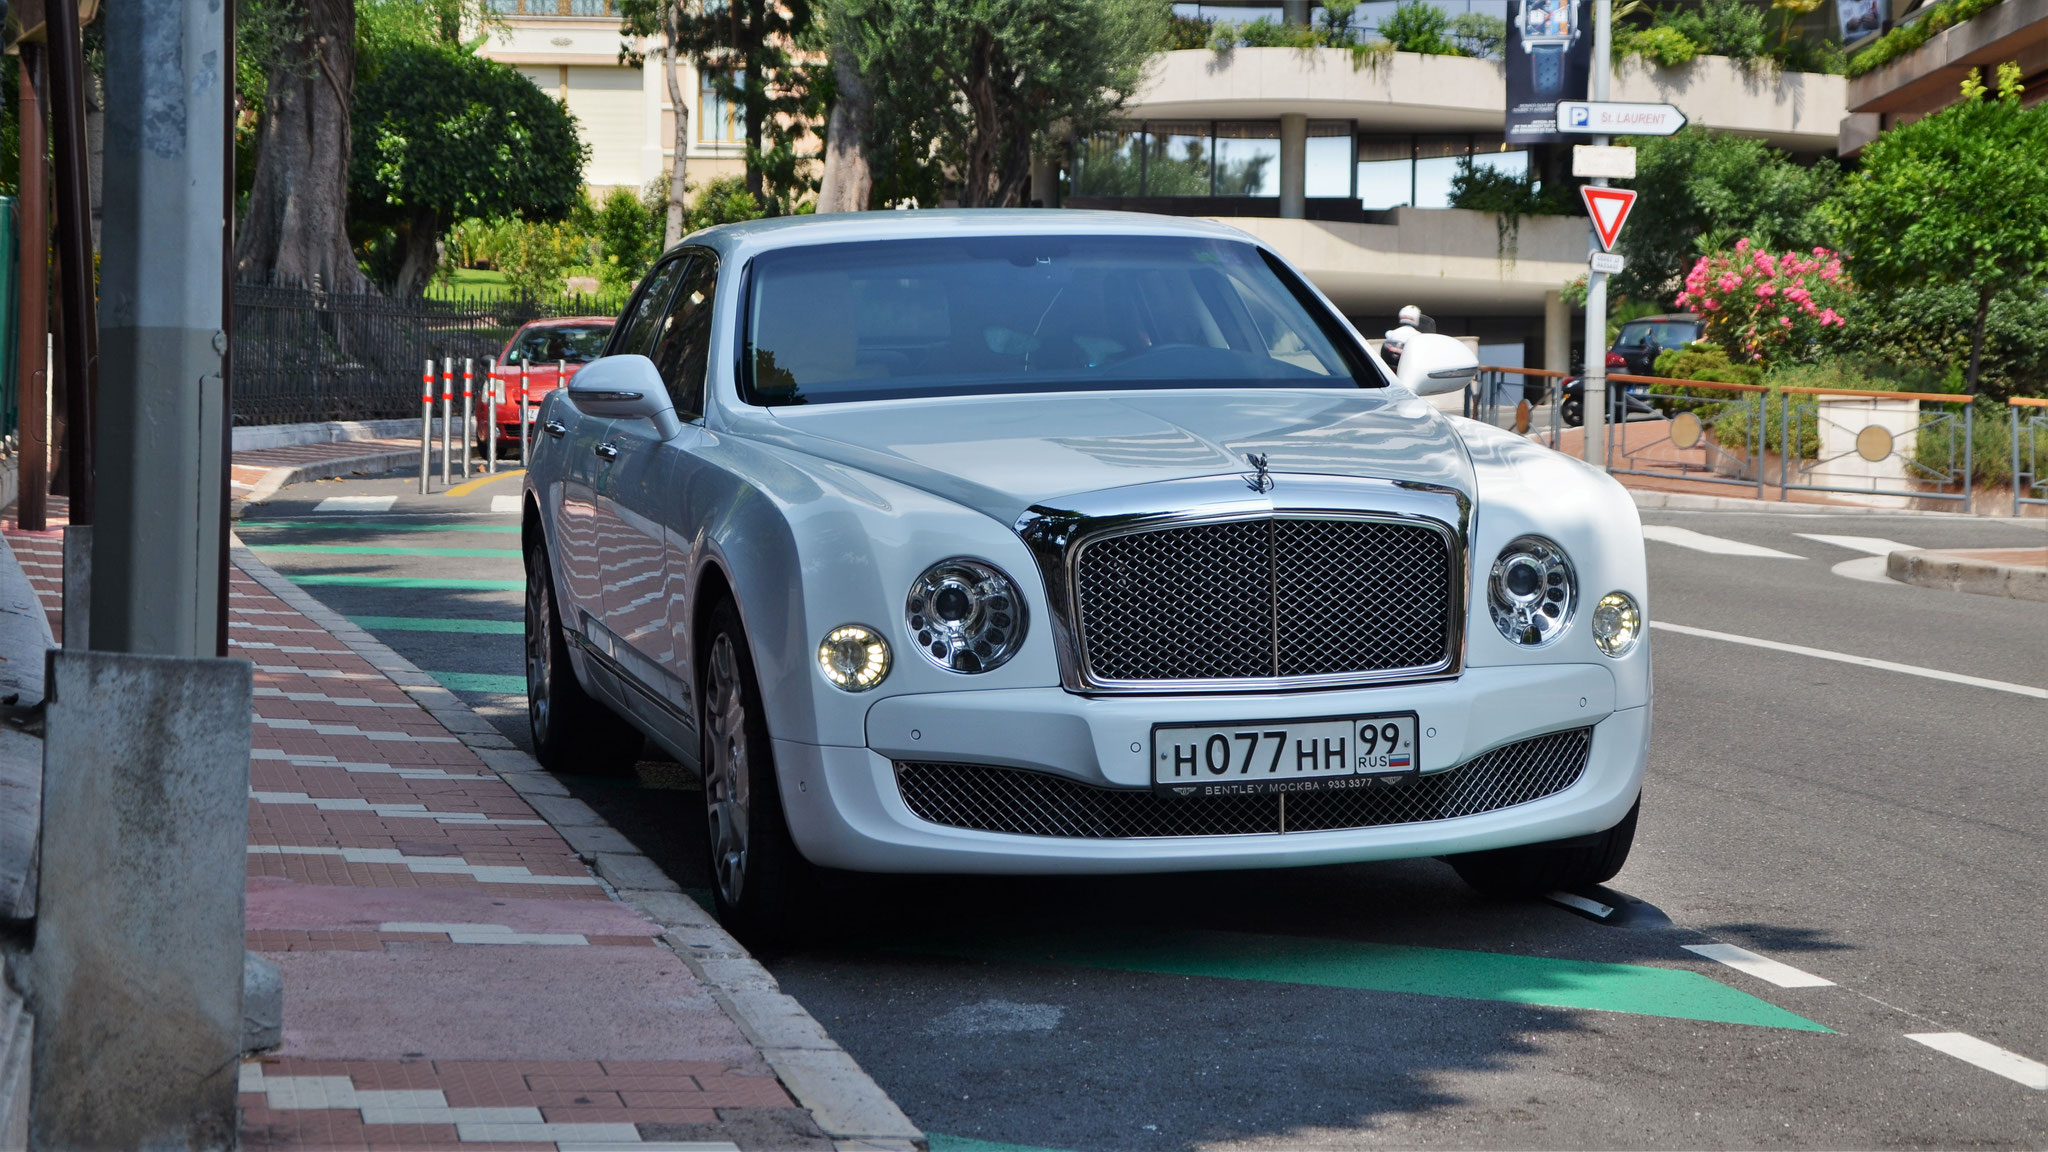 Bentley Mulsanne - H-077-HH-99 (RUS)